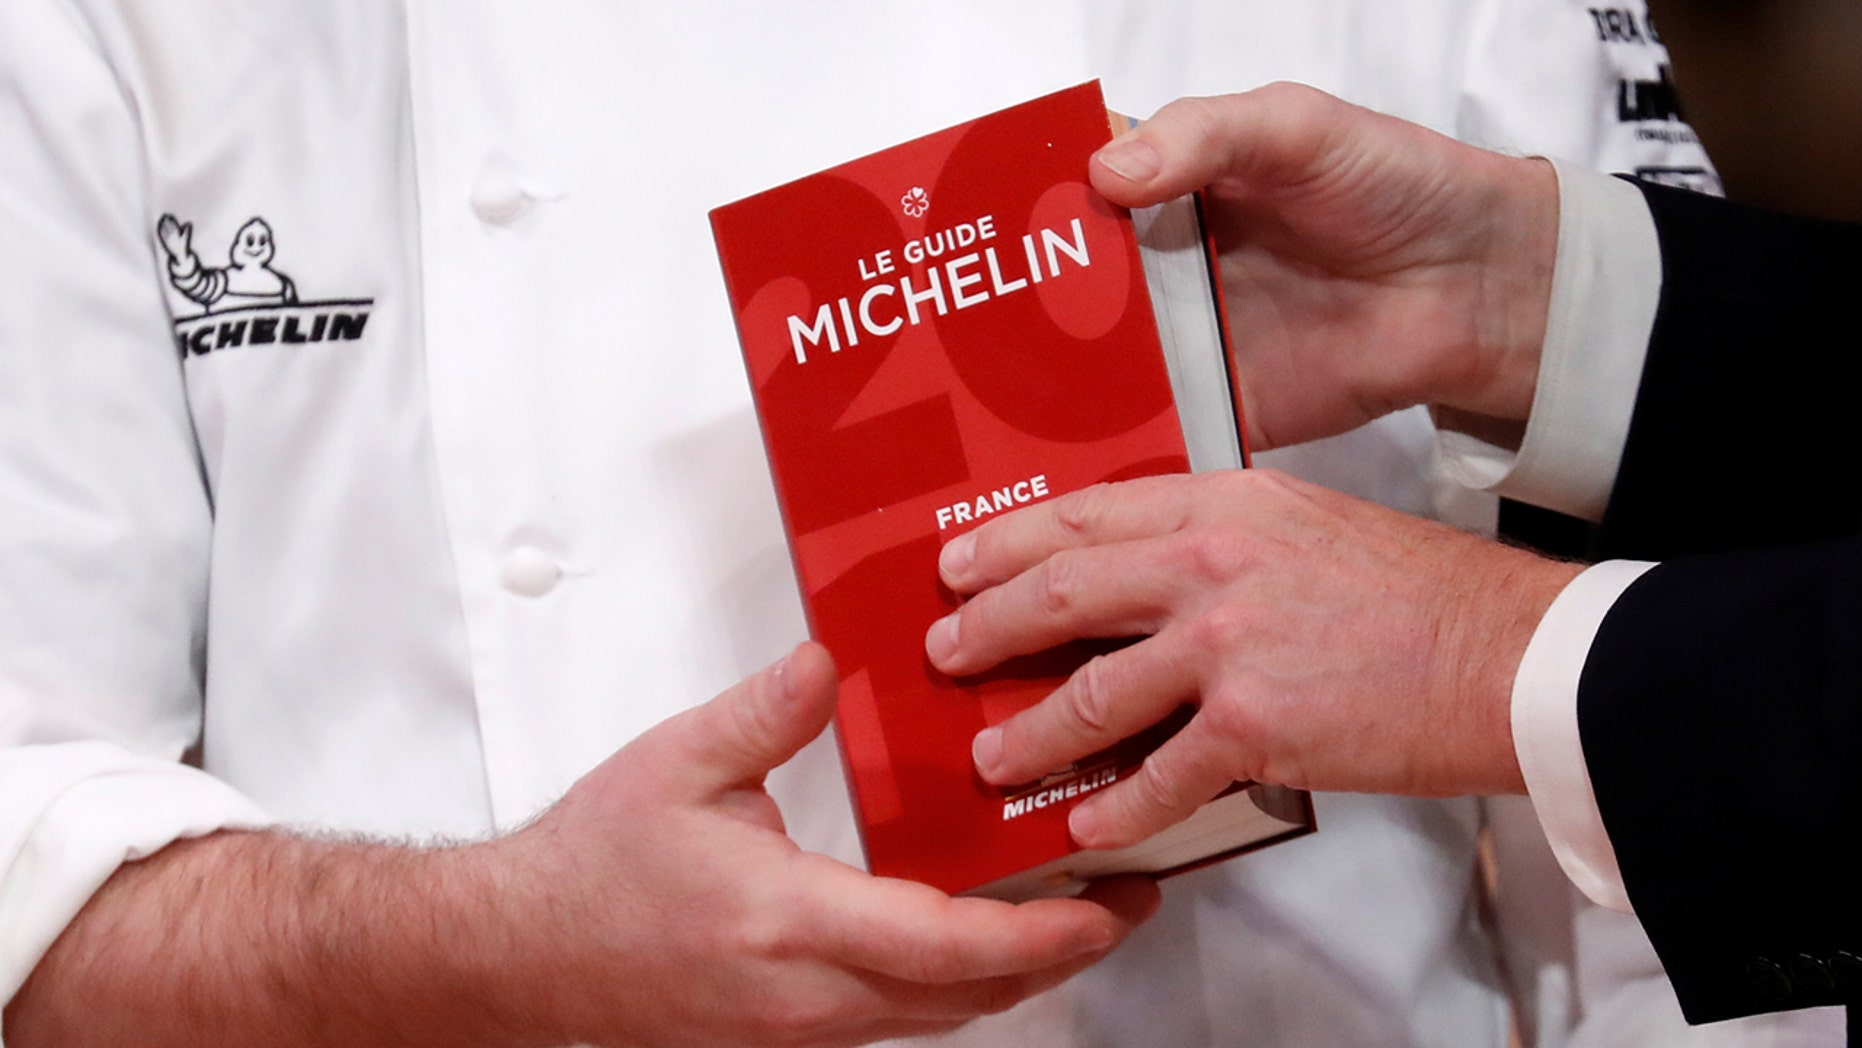 Everything you've ever wanted to know about Michelin stars, the Michelin guide, and even the Michelin Man.